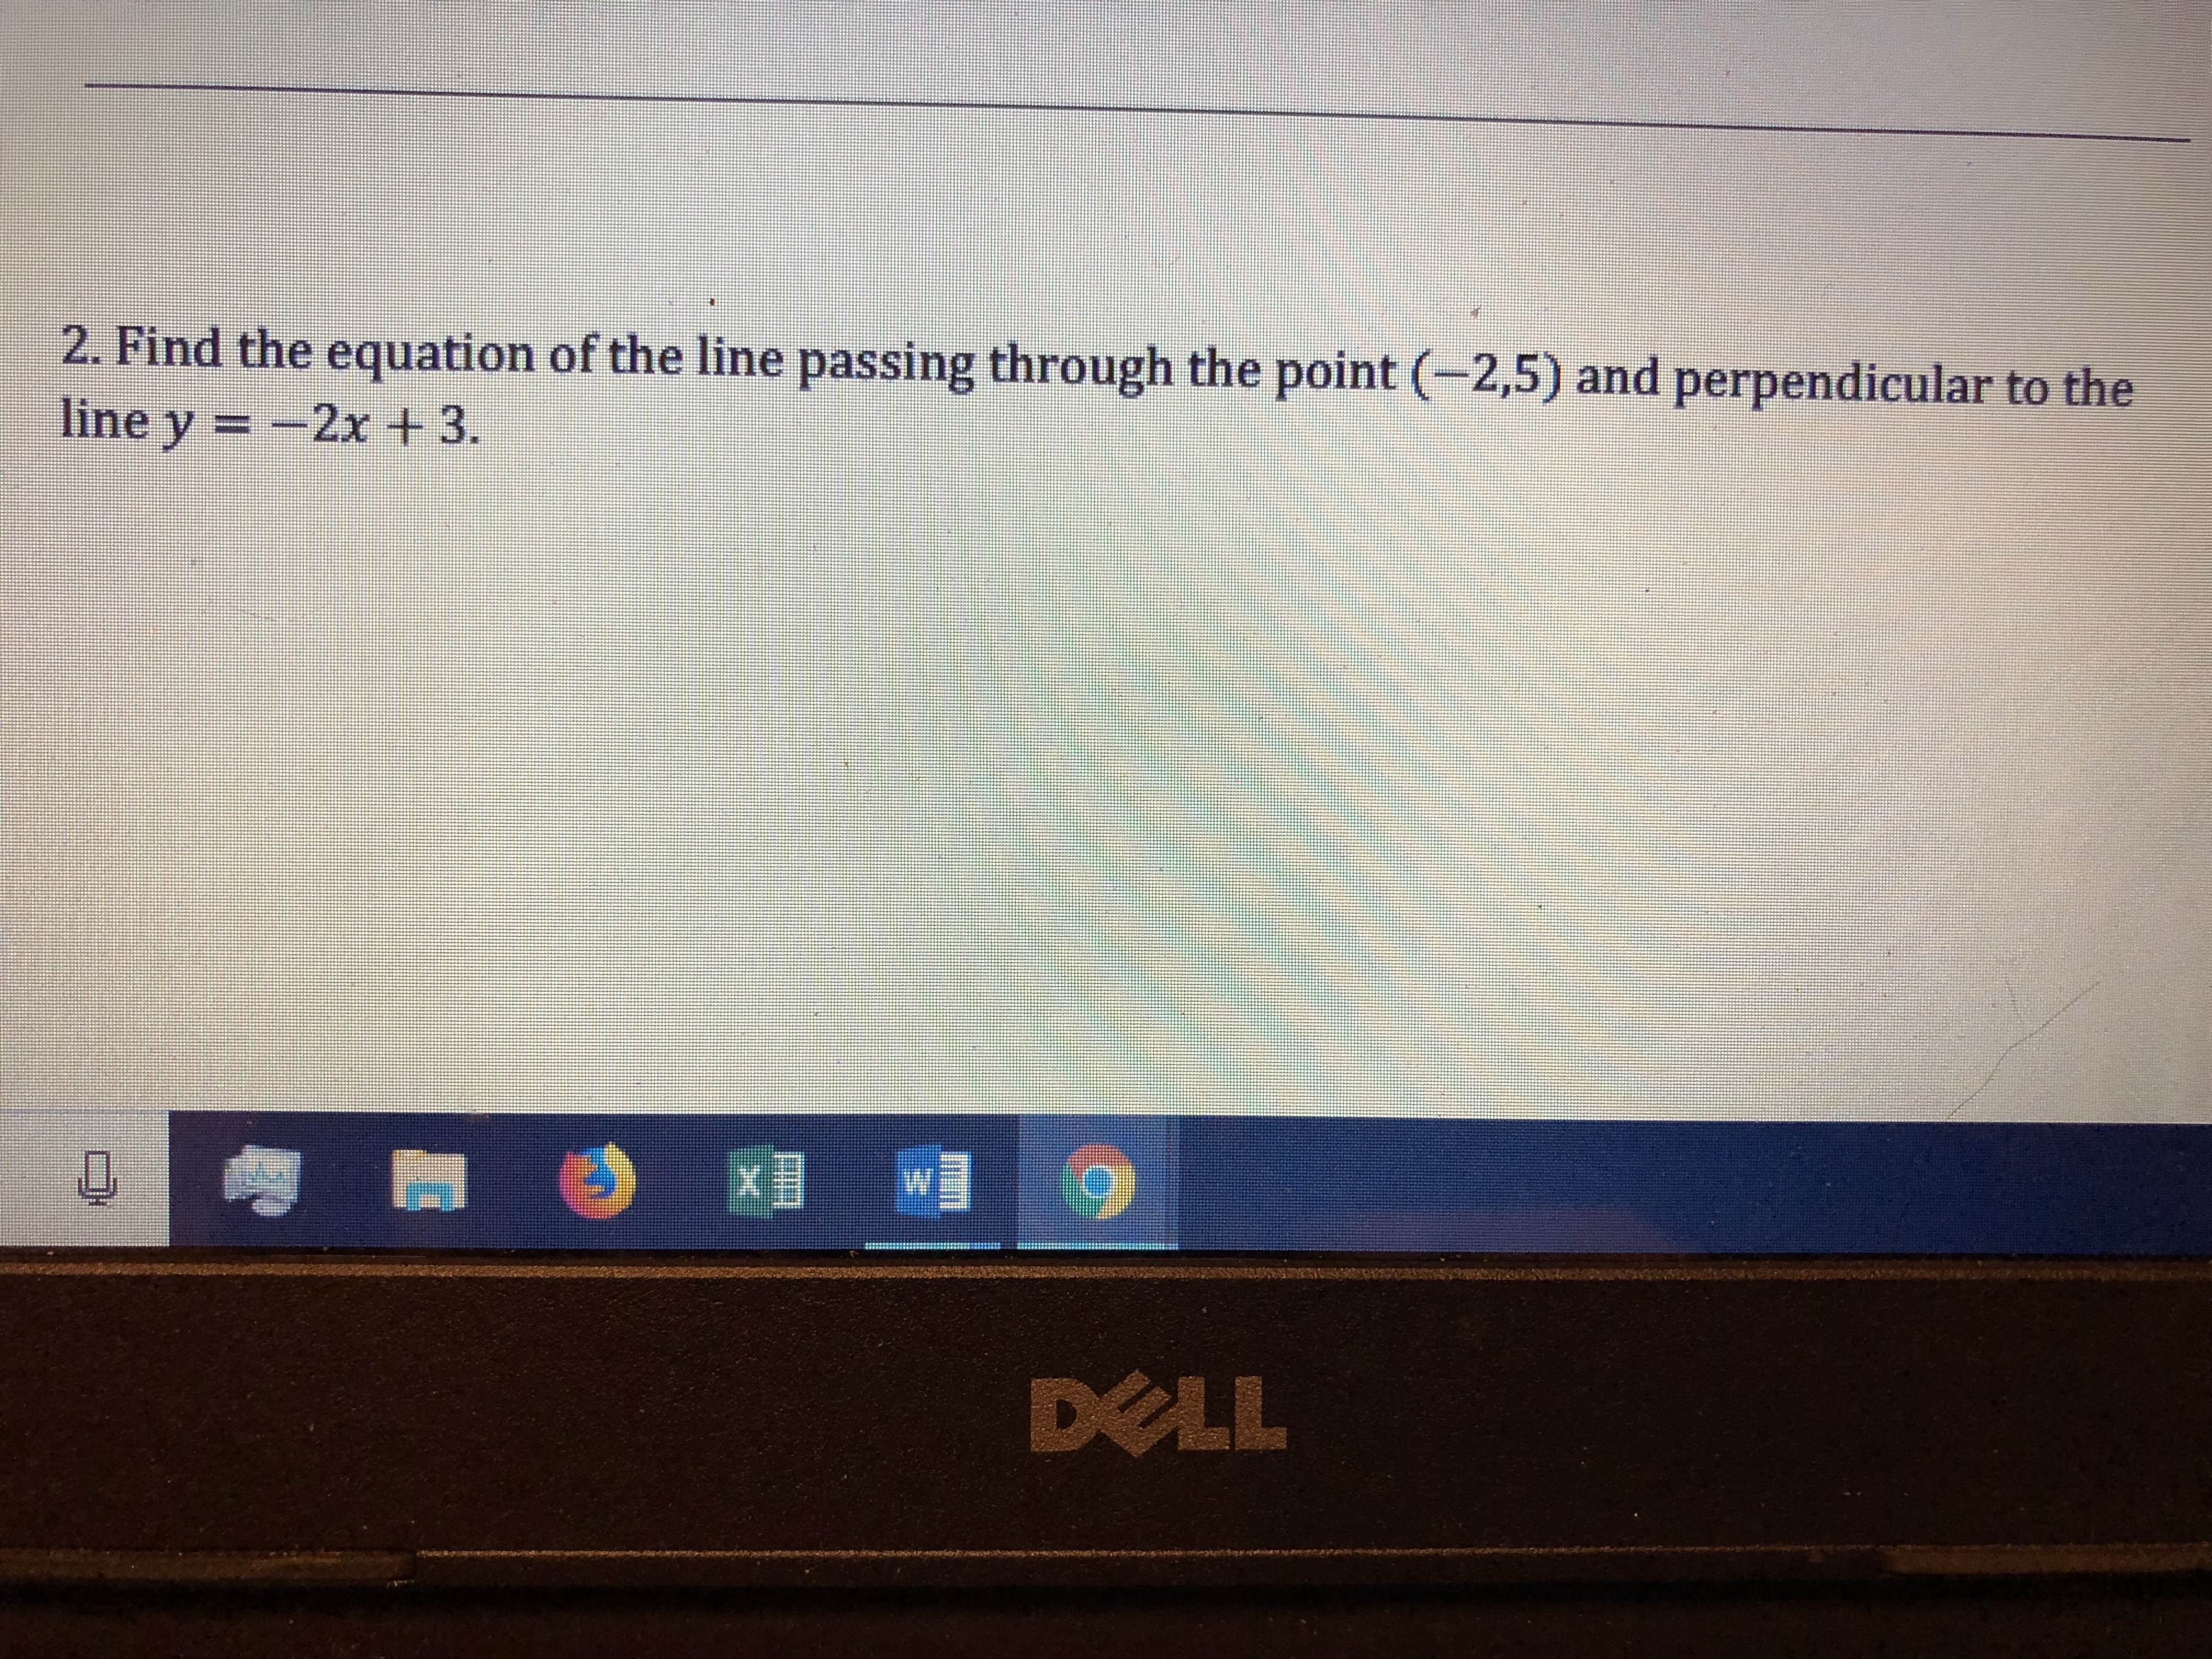 2. Find the equation of the line passing through the point (-2,5) and perpendicular to the line y- -2x + 3. DELL